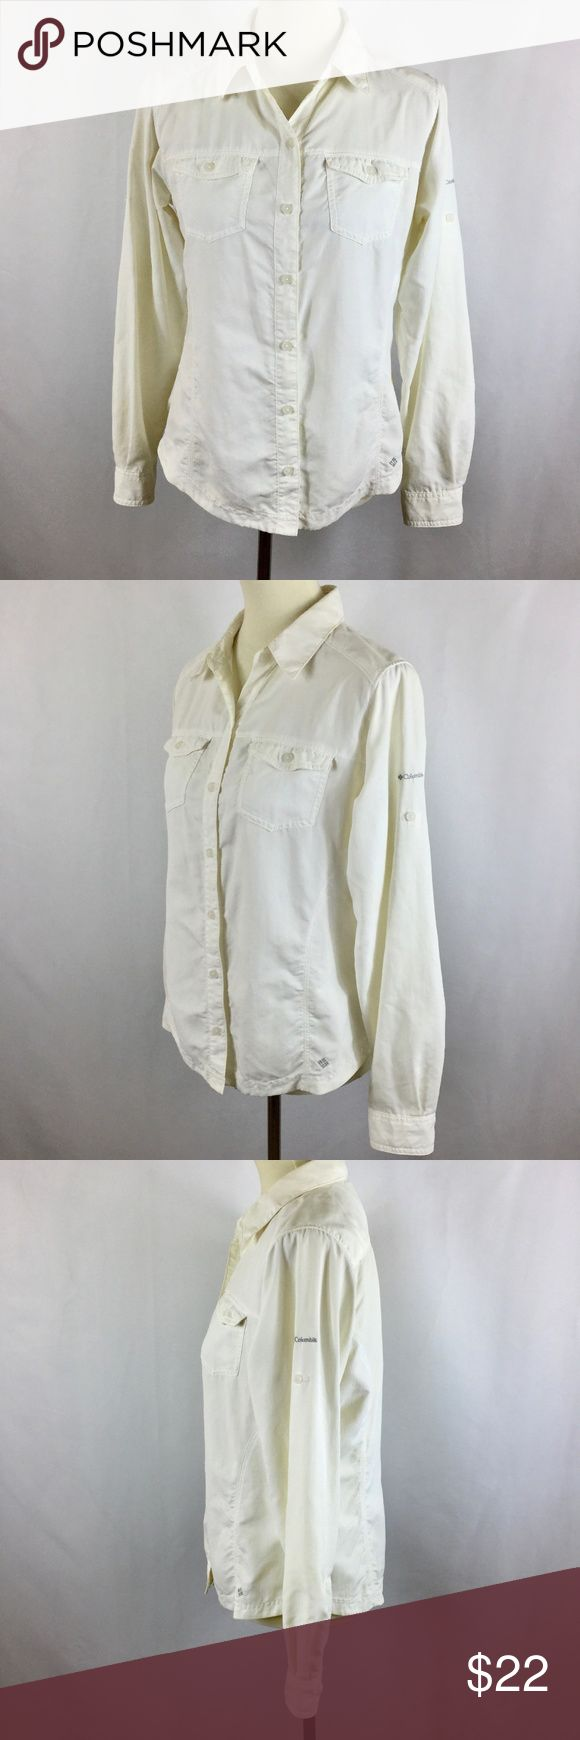 "Columbia Omni-Shade Sun Protection Outdoors Shirt Columbia Omni-Shade shirt in women's medium, off-white color. It has long sleeves with a roll tab so you can roll them up as far as above the elbow, or leave down. 2 breast pockets with button flap closure, and high button on collar lapel for the option to convert to a funnel neck style. Button front, with extra material on the shoulders where protection from the sun is needed most. Lightweight nylon.  Measurements: Bust: 40"", Length: 26""…"